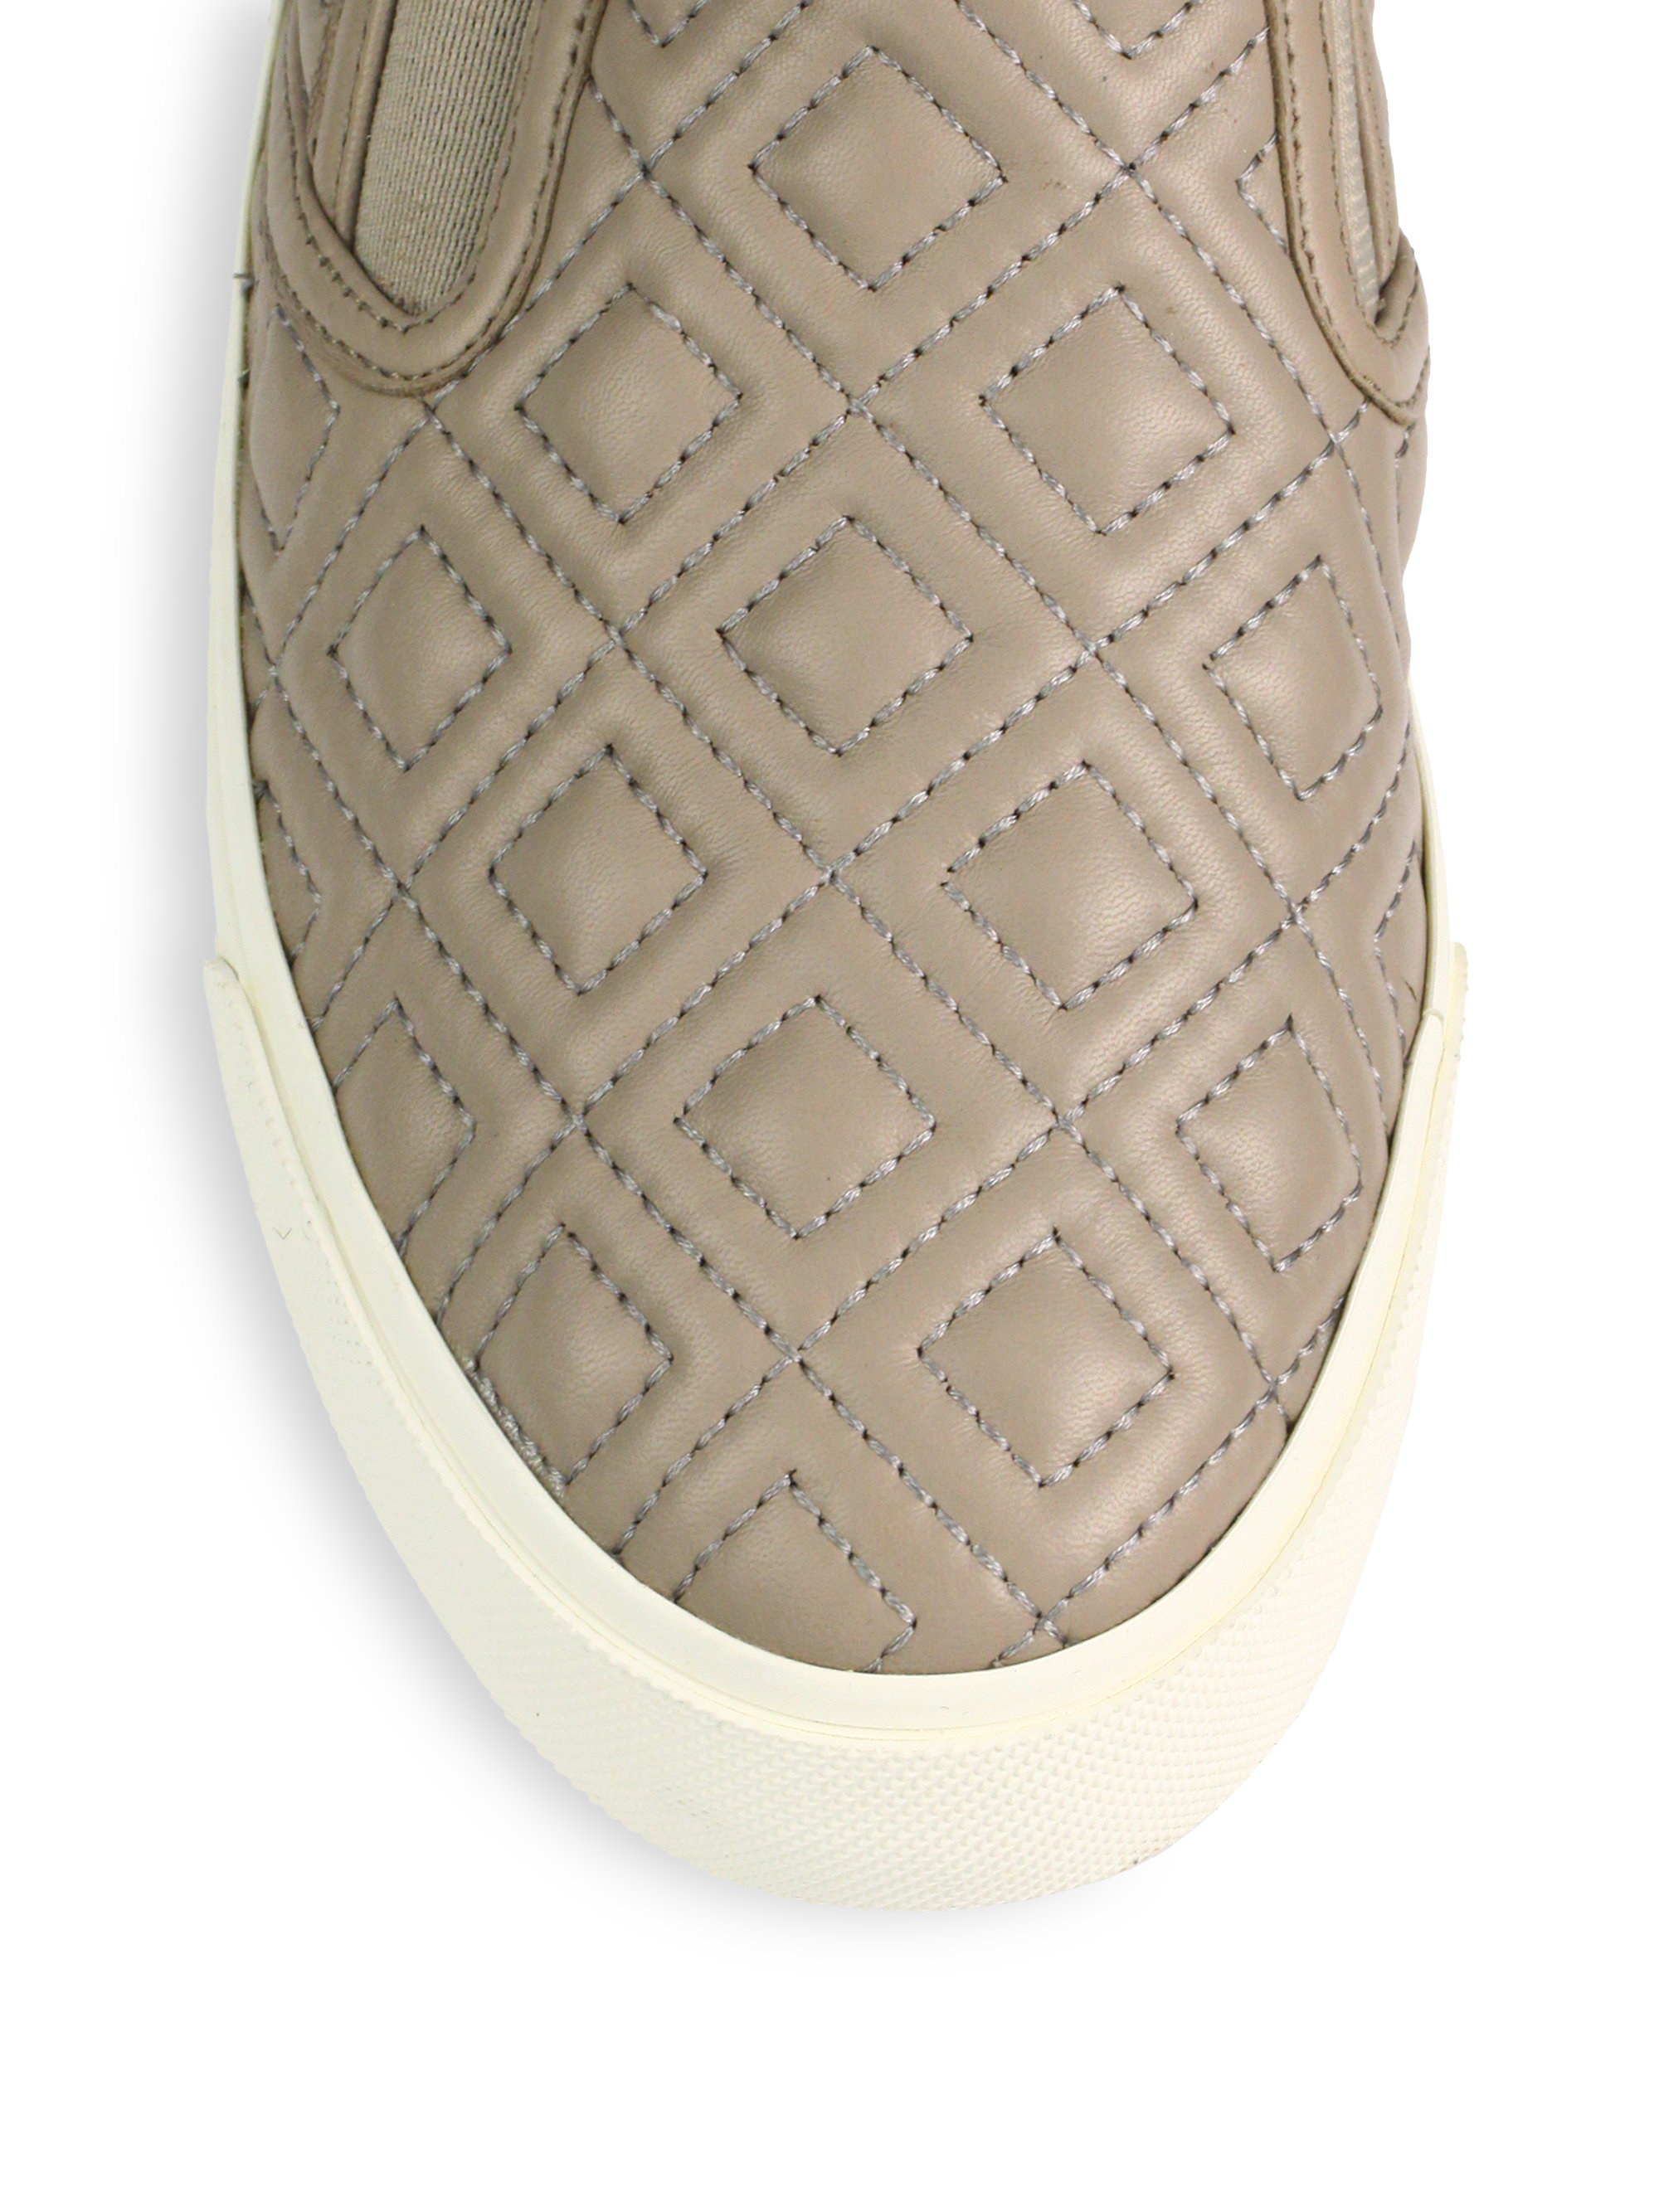 Tory Burch Jesse Quilted Leather Slipon Sneakers In Beige